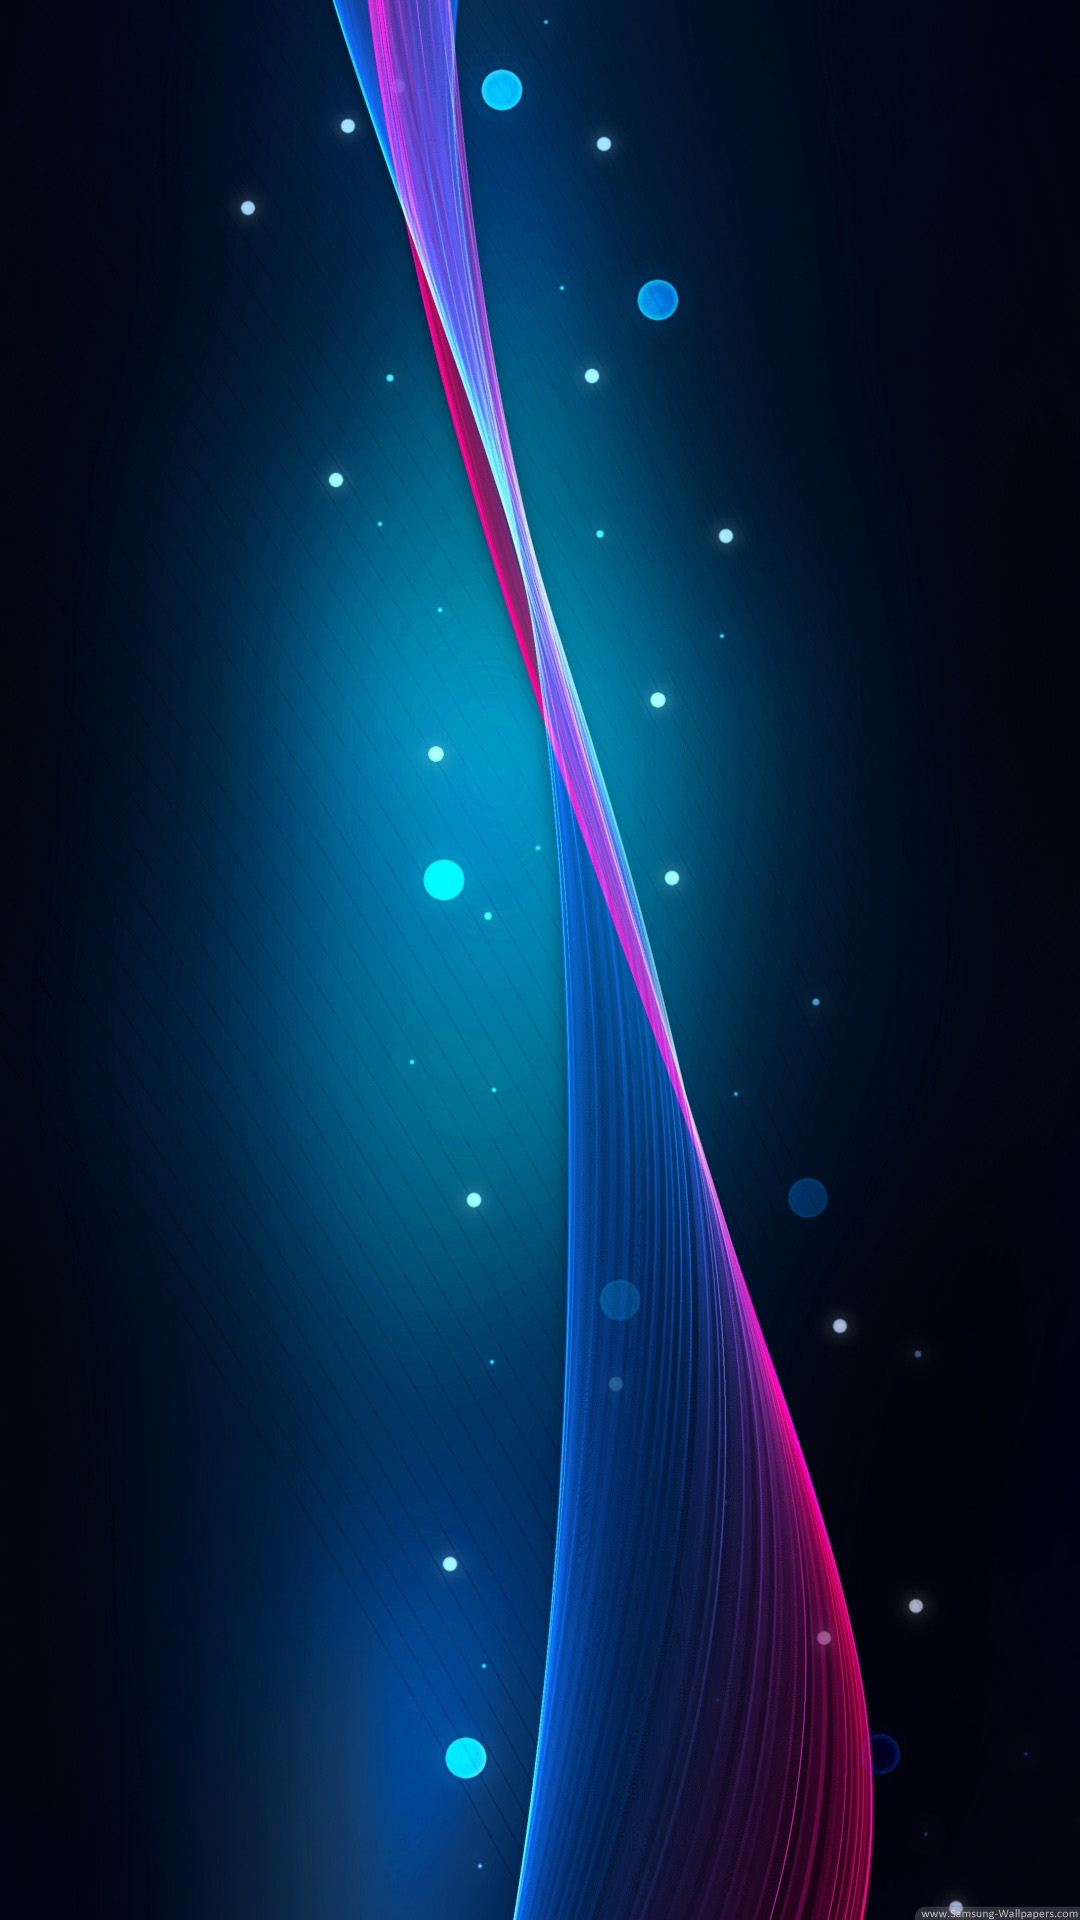 Free wallpapers for cell phones wallpapersafari - Mobel entsorgung gratis ...